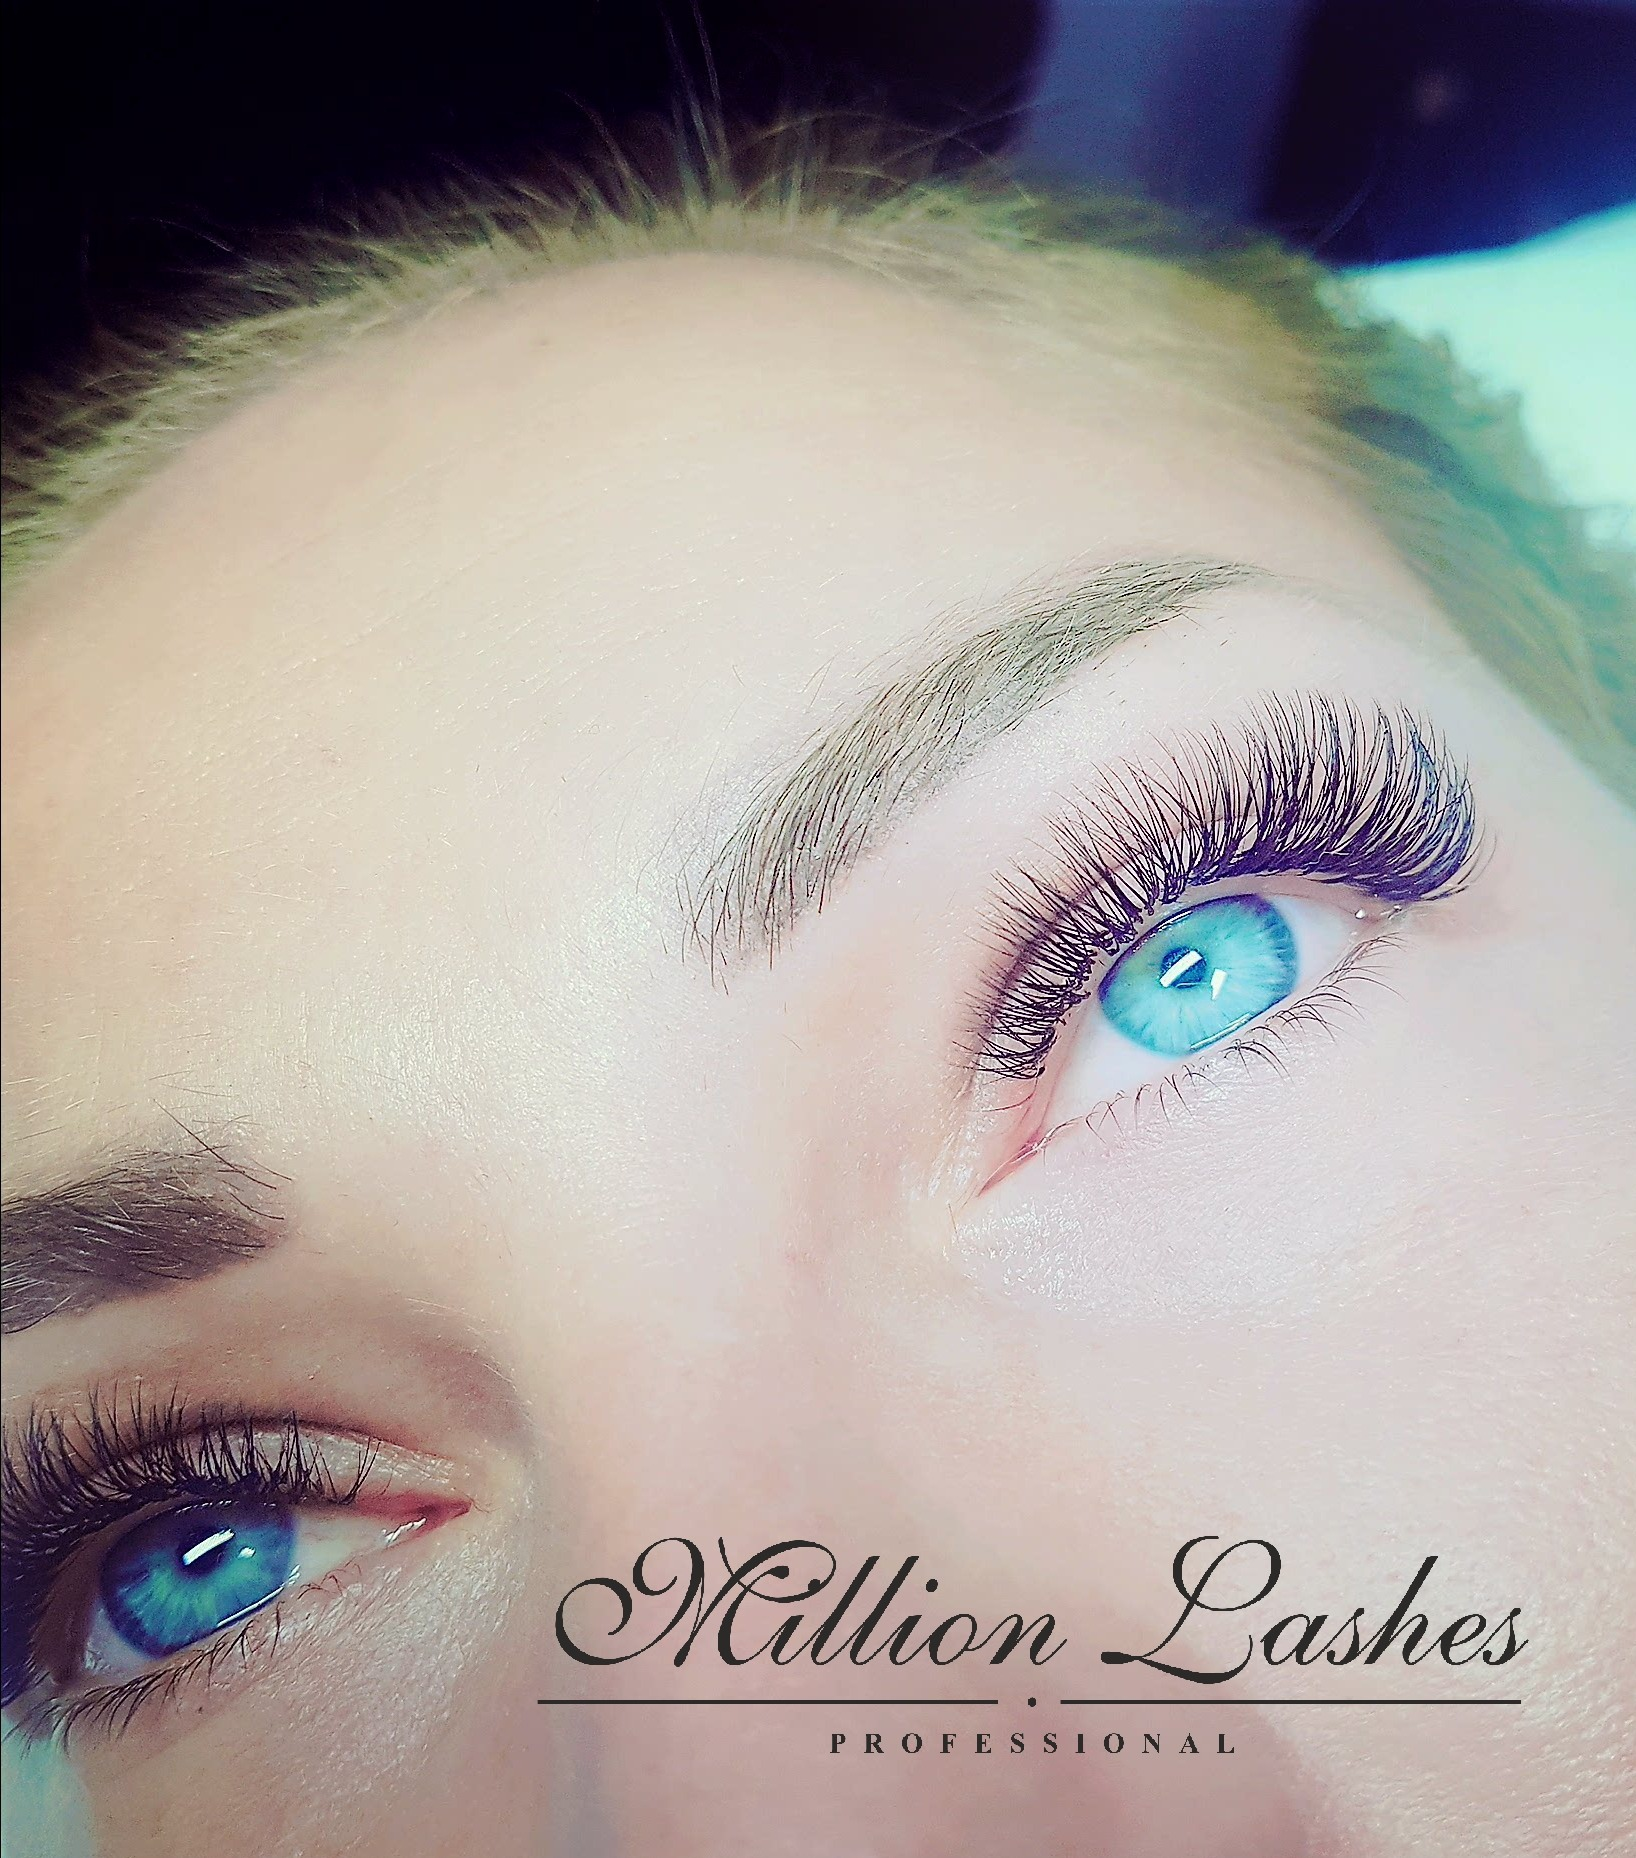 aa2e60979d8 Of course, their passion is lashes! Million Lashes are committed to the  highest possible standards in customer care, quality and training.